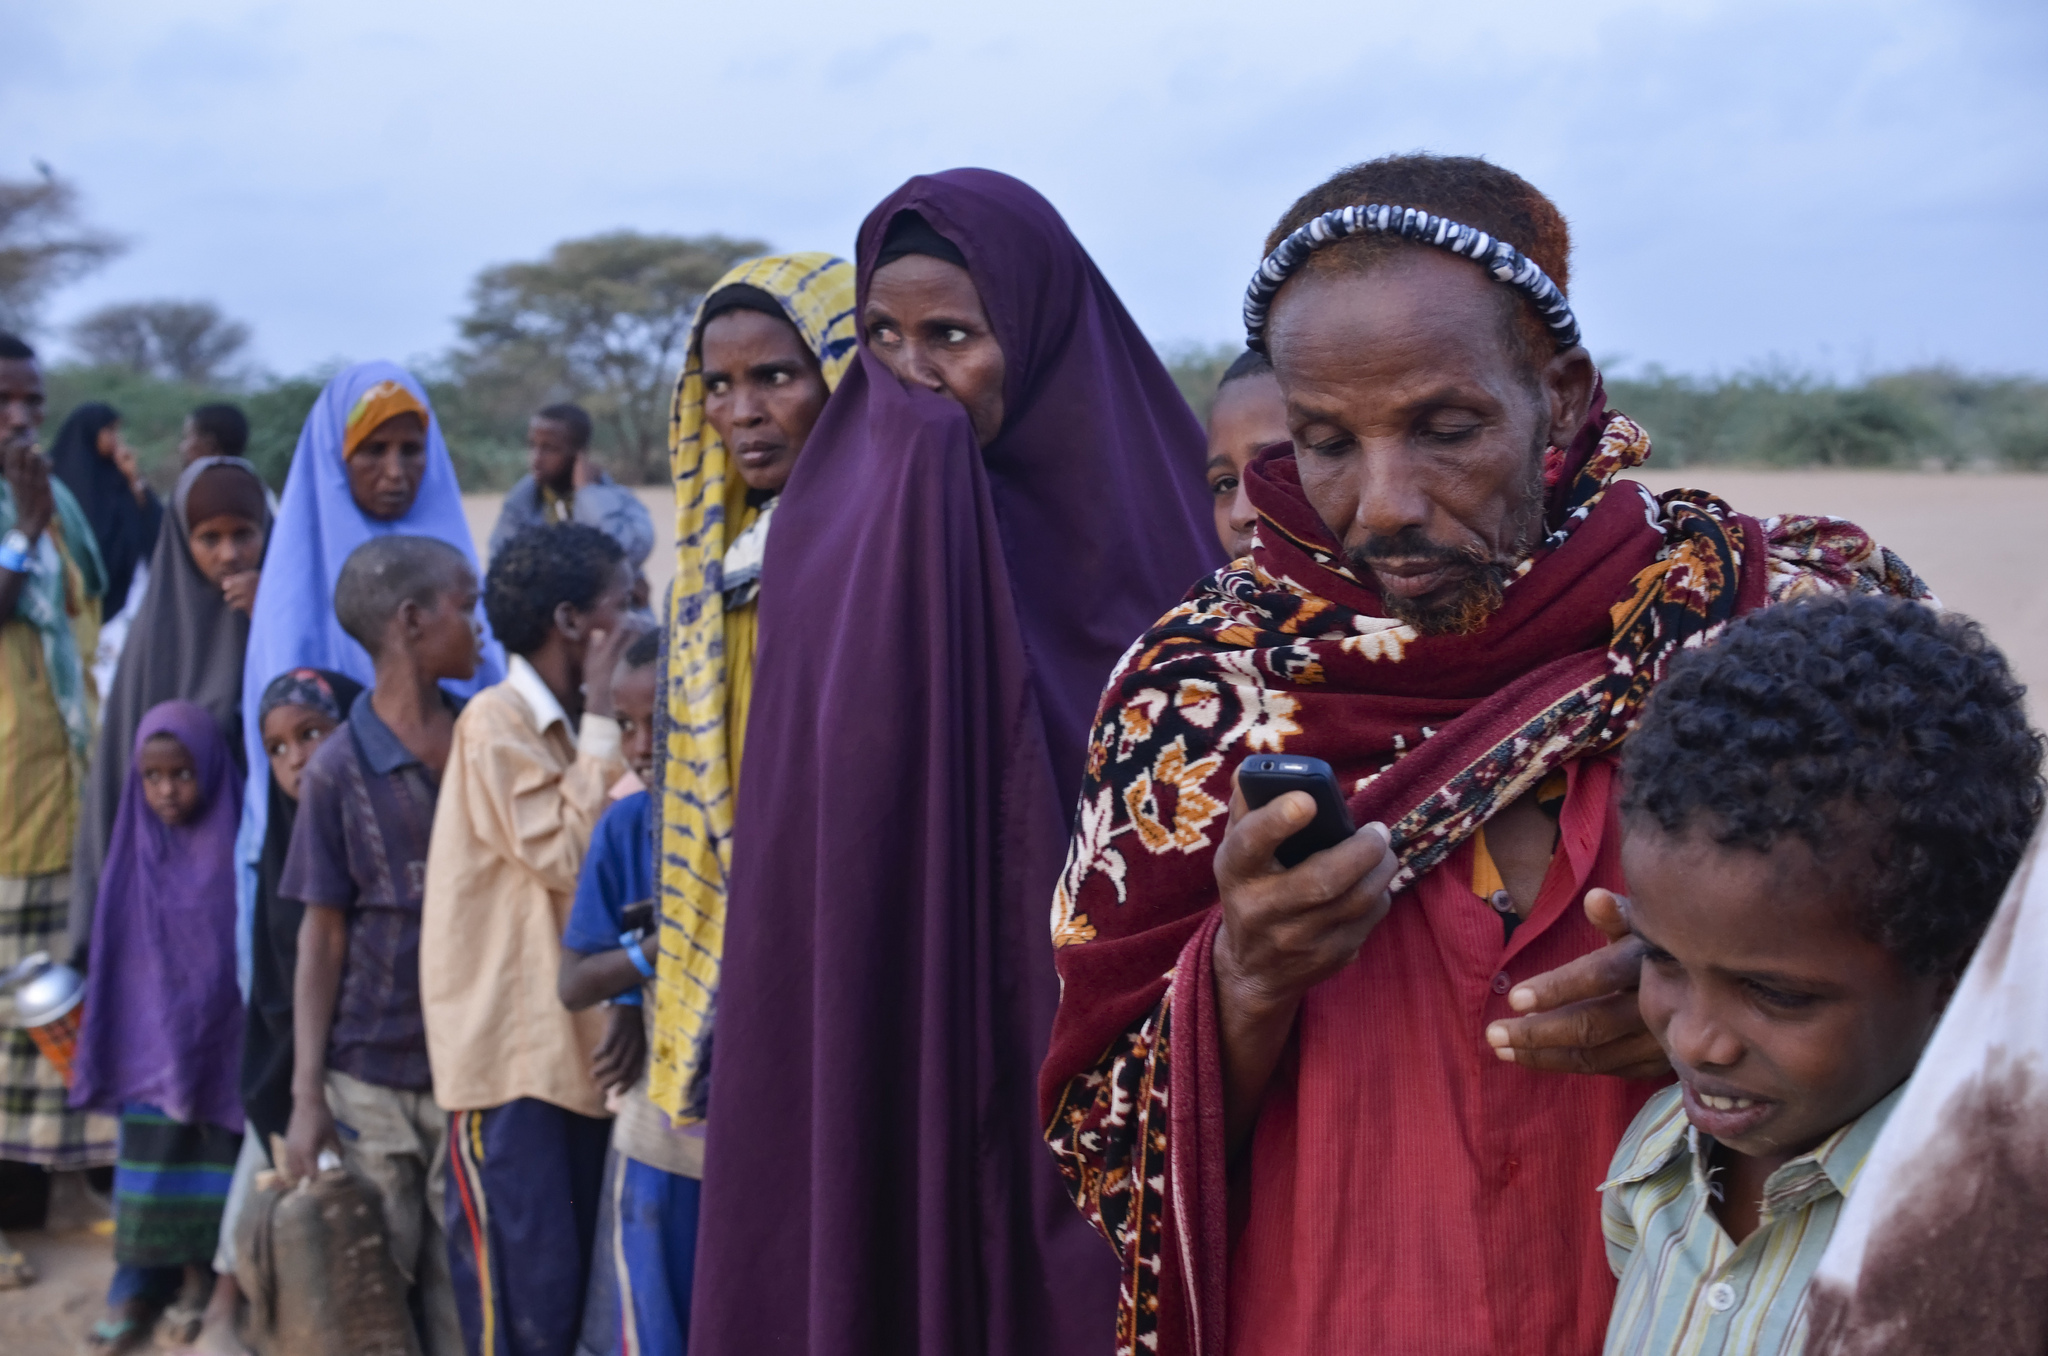 Refugees from Somalia wait to register at Ifo refugee camp in Dadaab, Kenya. Kenya is a member of the EAC, which is on a path to closer integration reminiscent of the one taken by the EU in the lead up to the Schengen agreement. Photo: Internews Europe (CC 2.0)